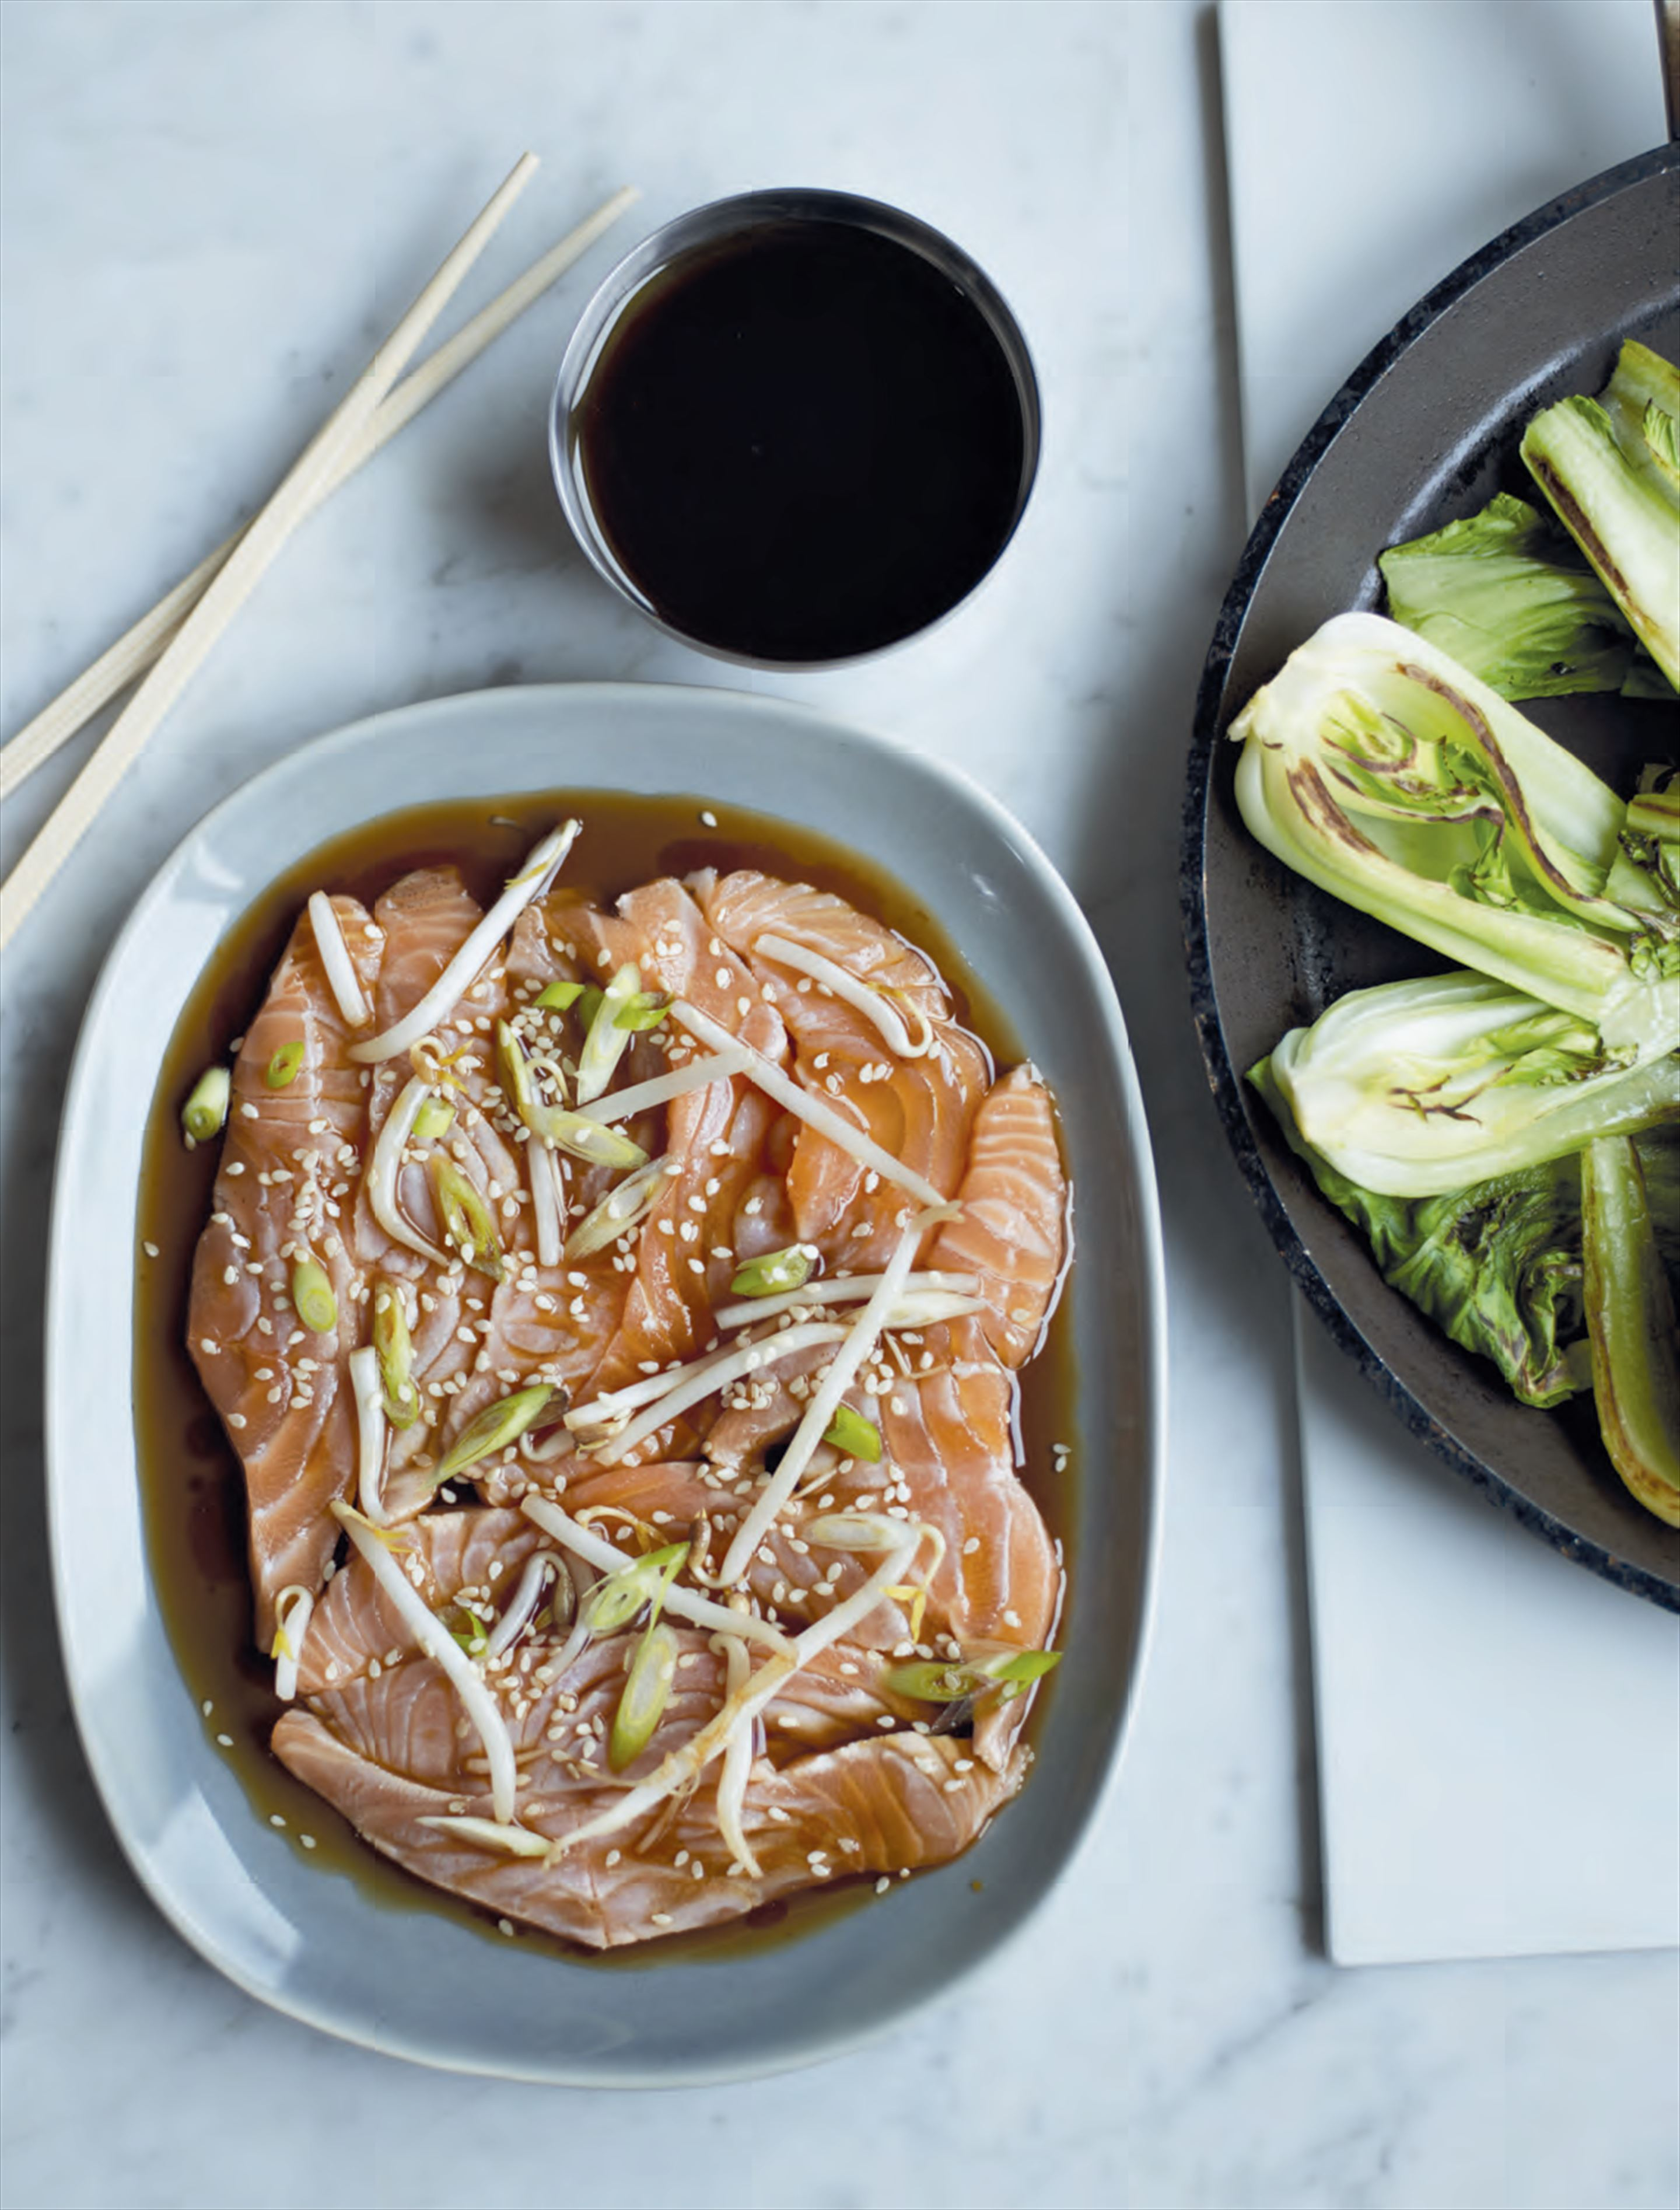 Sushi salmon with sizzling sesame oil & soy